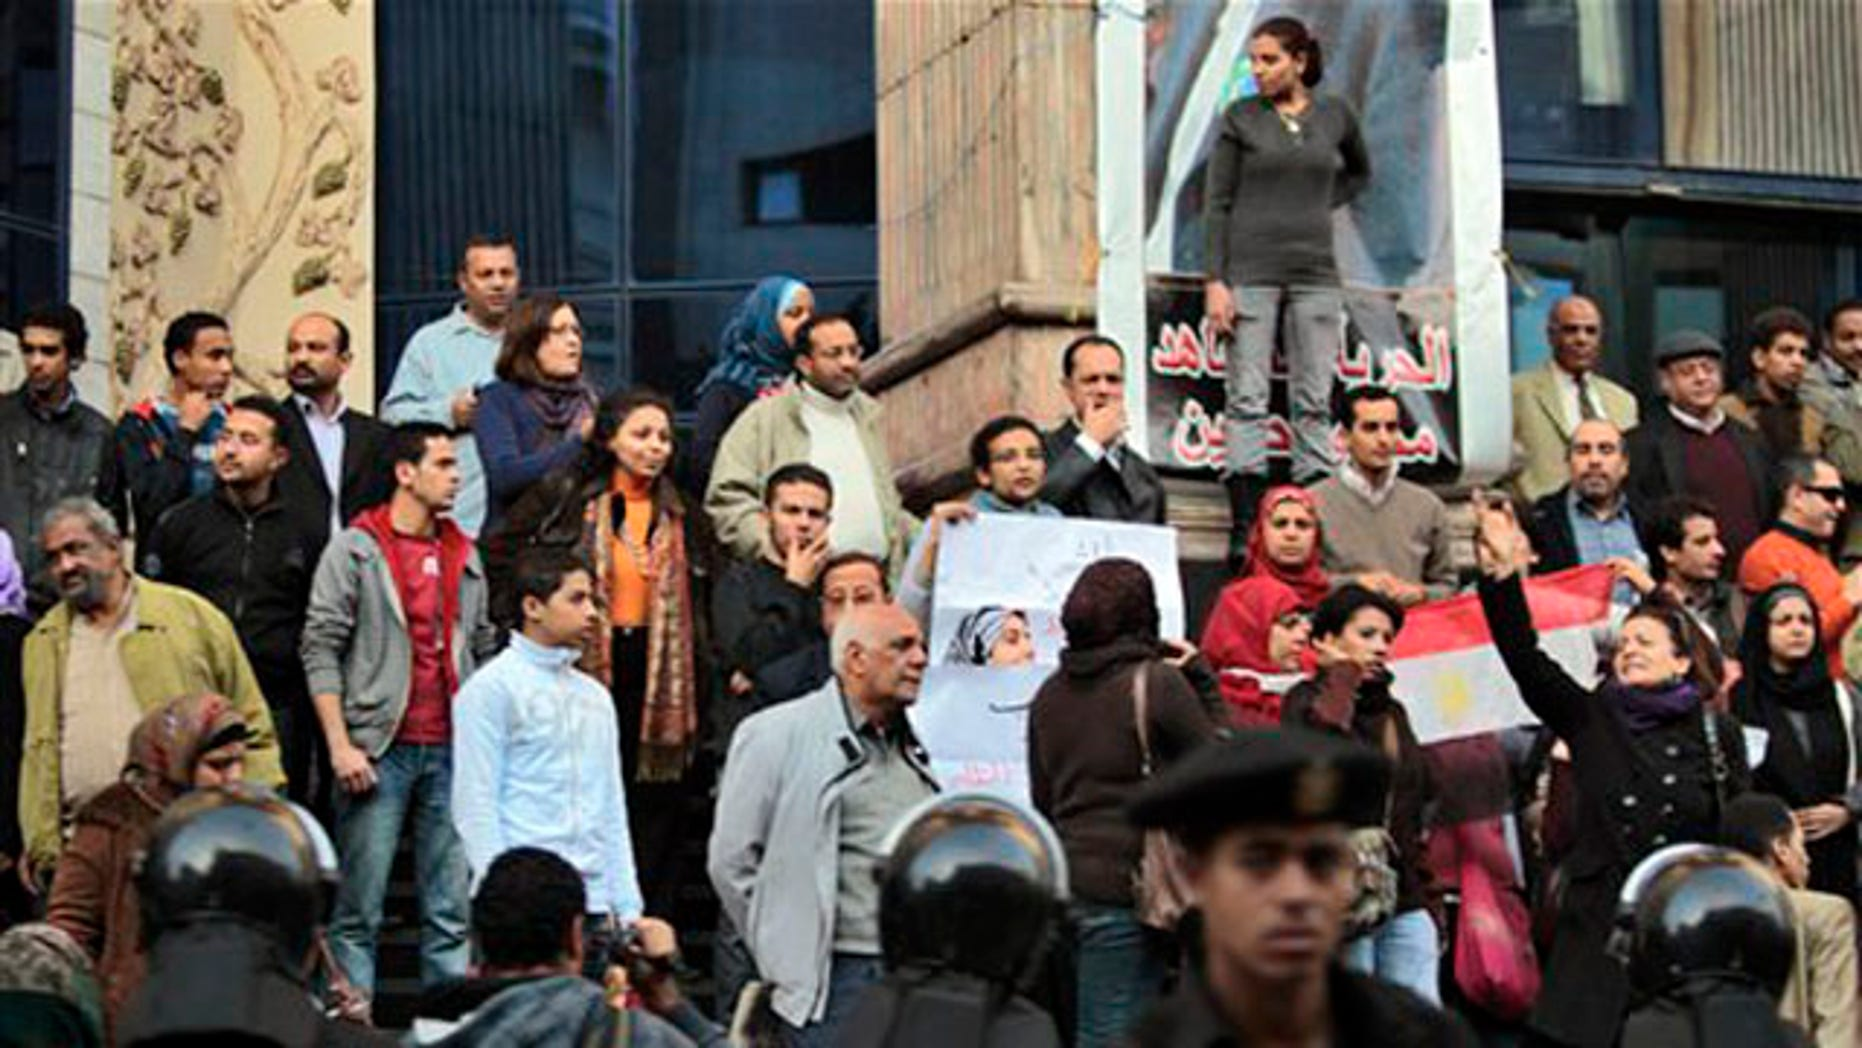 Egyptian anti-government activists chant slogans as they gather outside the Journalists Syndicate in downtown Cairo, Egypt, on Jan. 27.